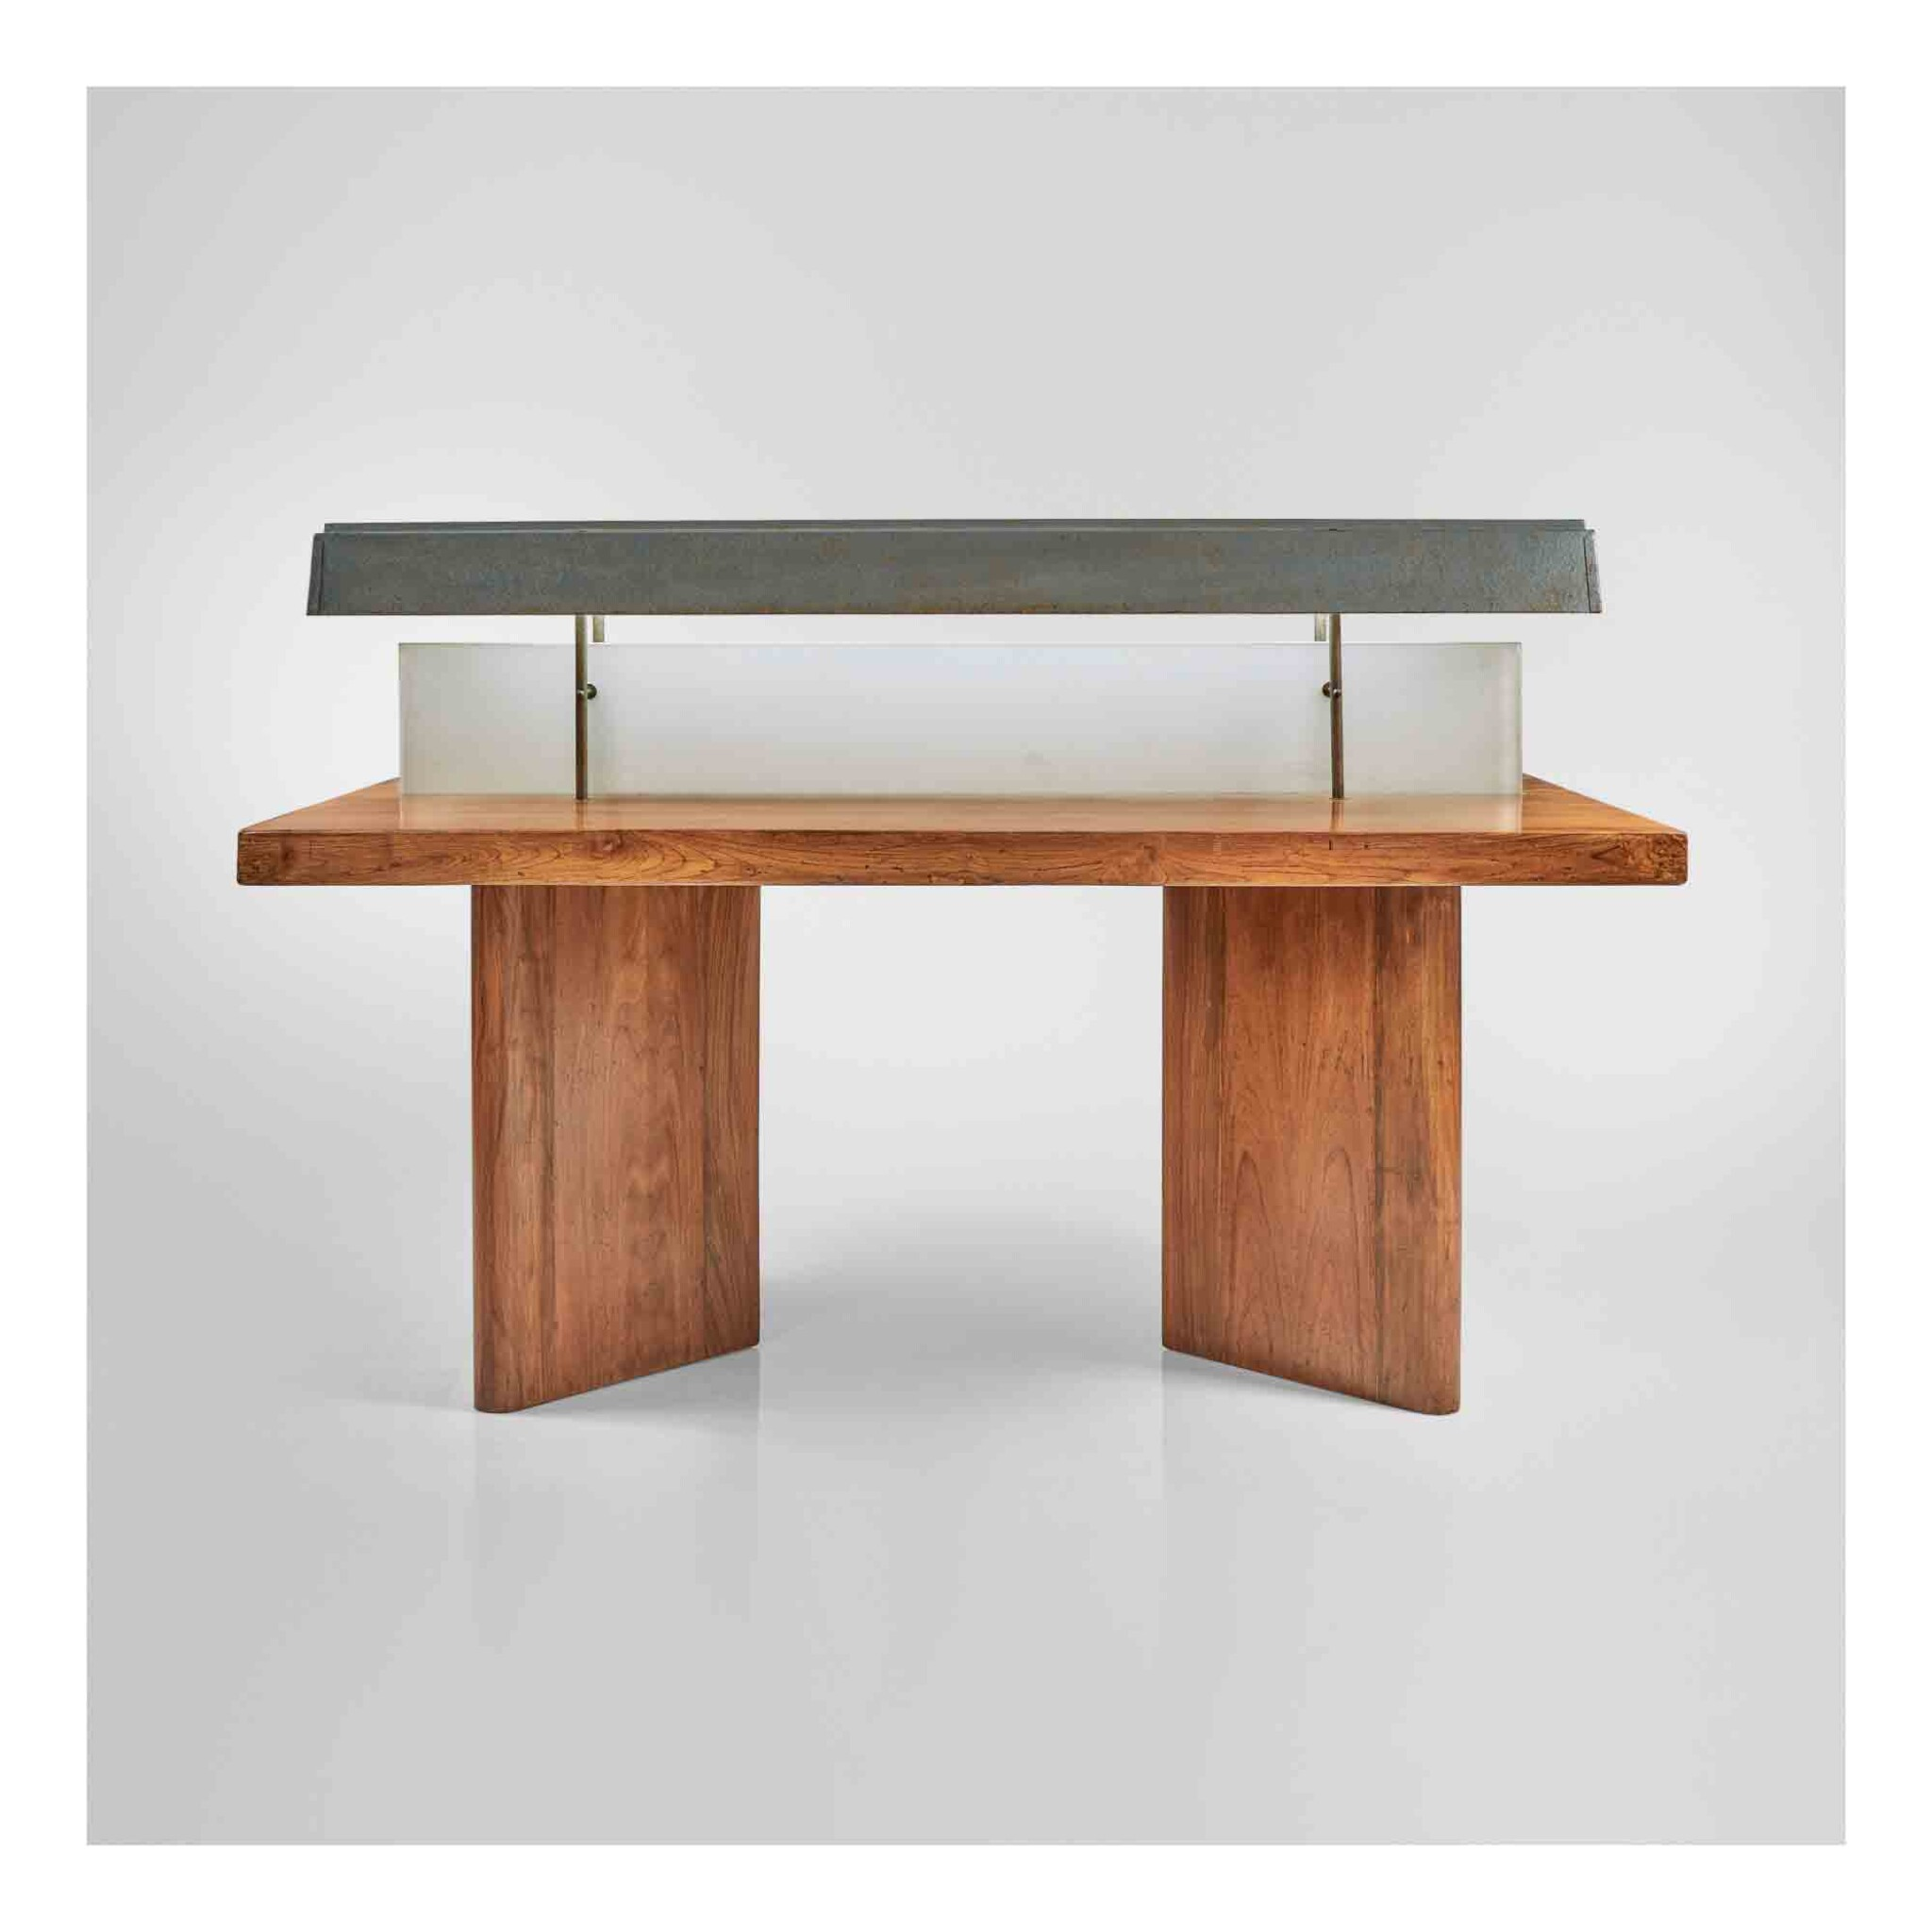 View 1 of Lot 358. Reading Table with Light, Model No. PJ-TAT-10-A.